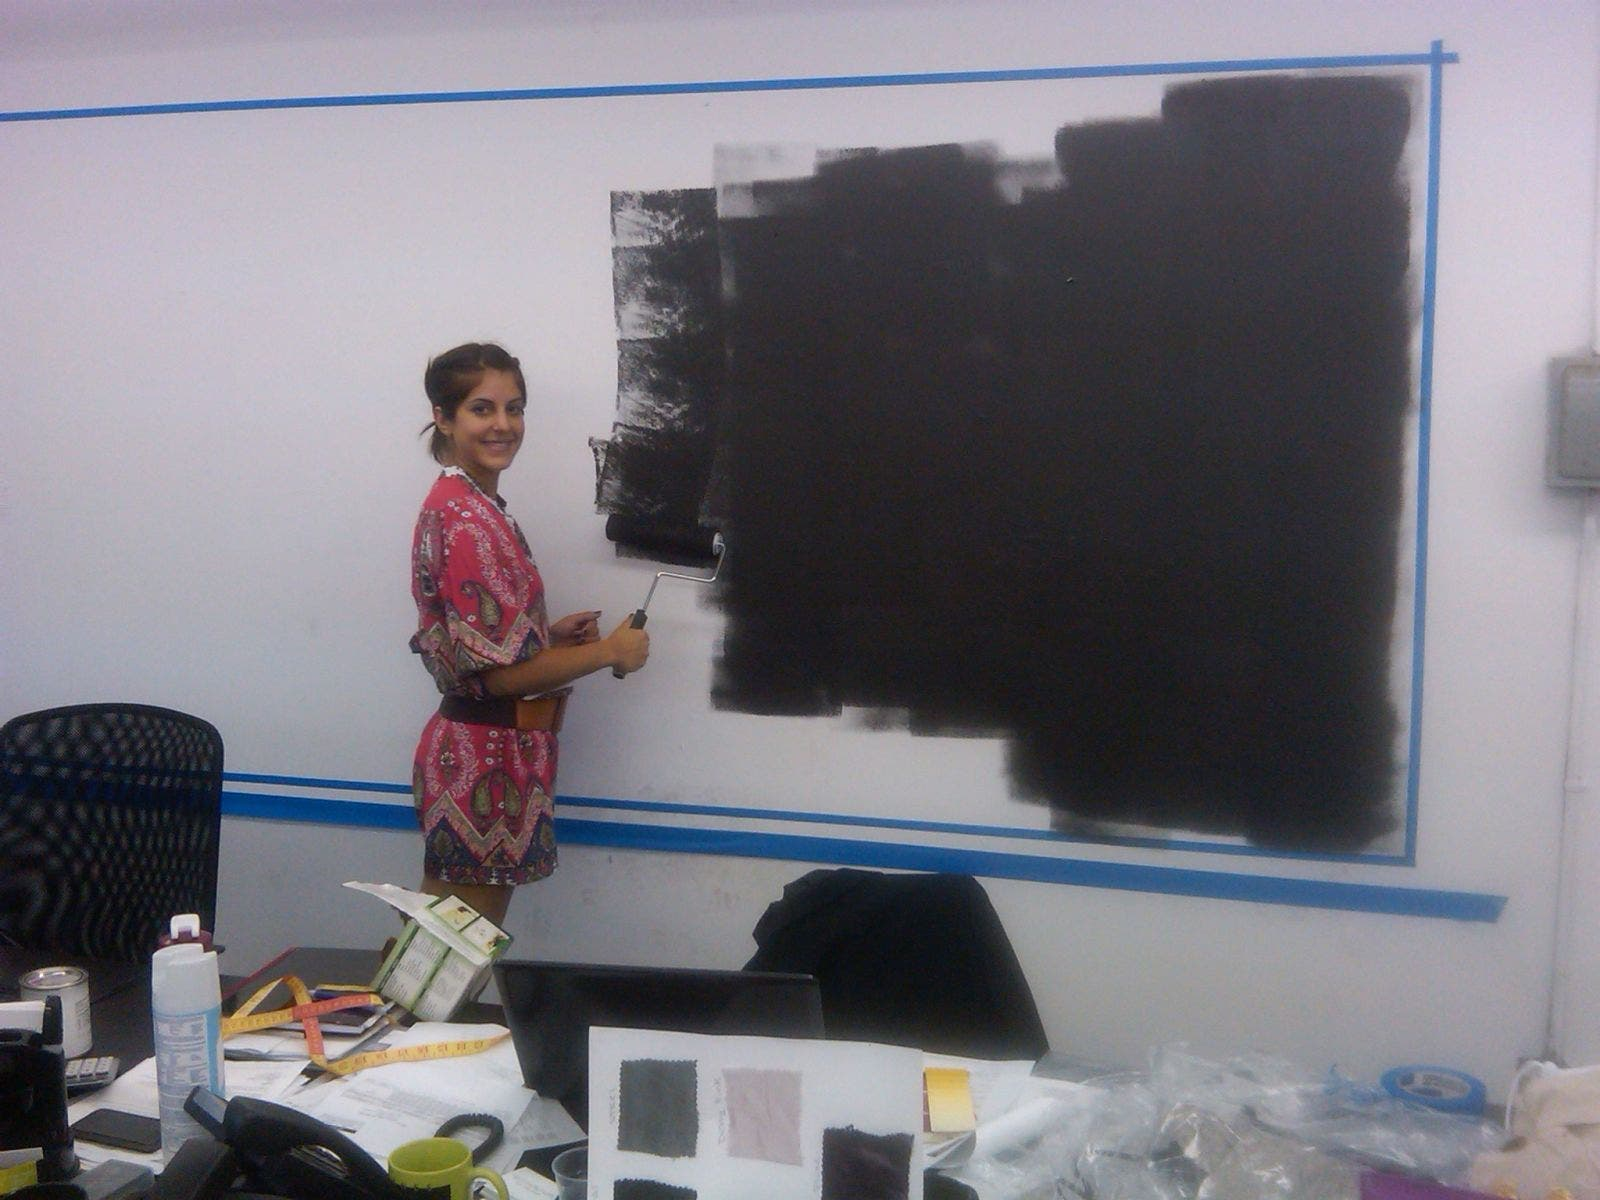 Anushka Painting the Magnetic Wall